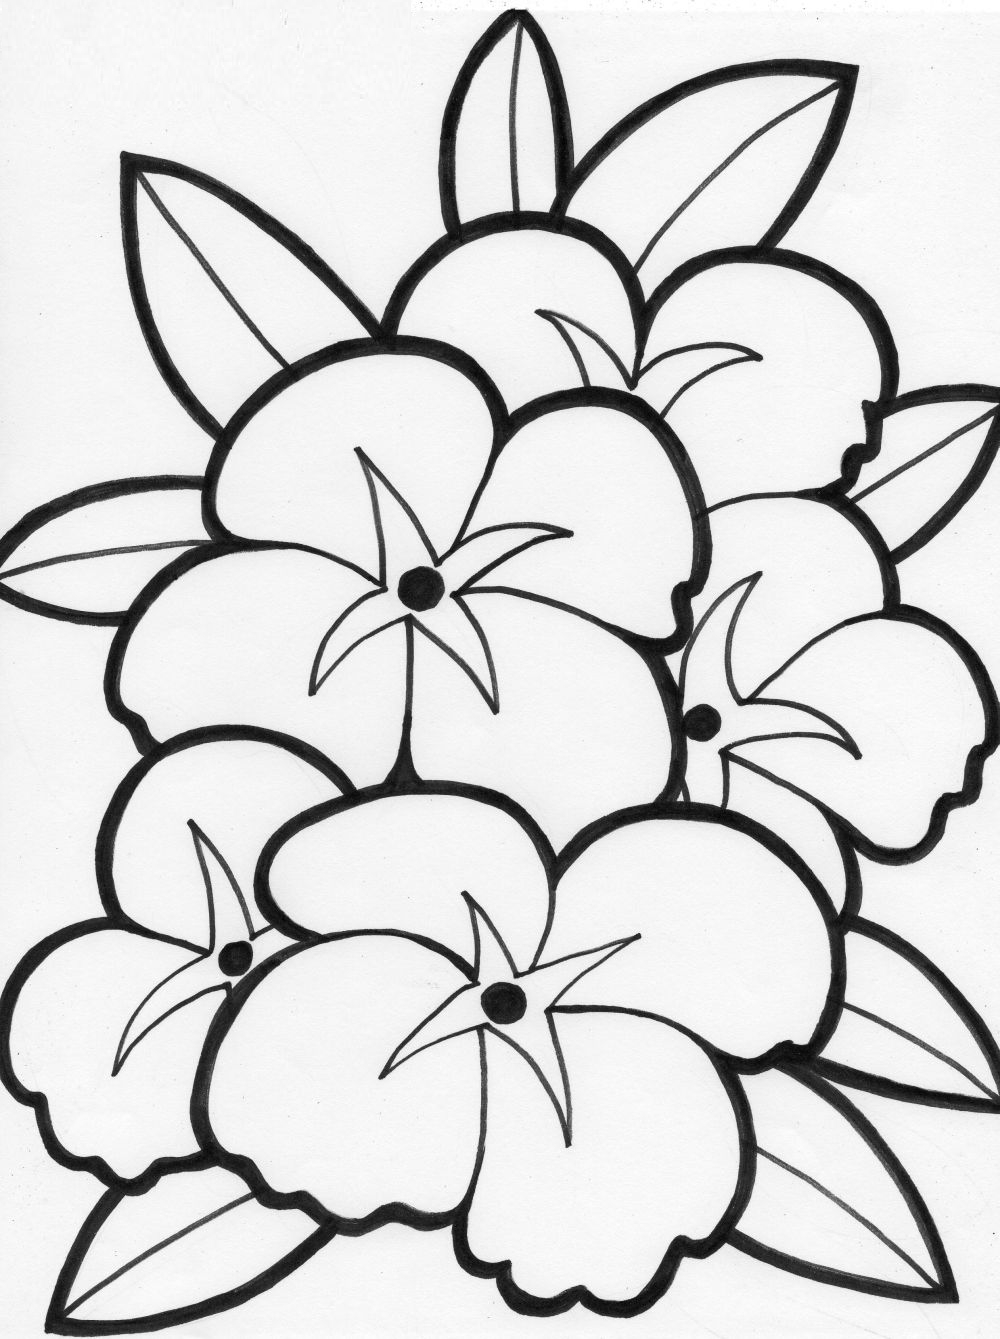 Free Coloring Pages   Free Flower Coloring Pages   Coloring Pages - Free Printable Flower Coloring Pages